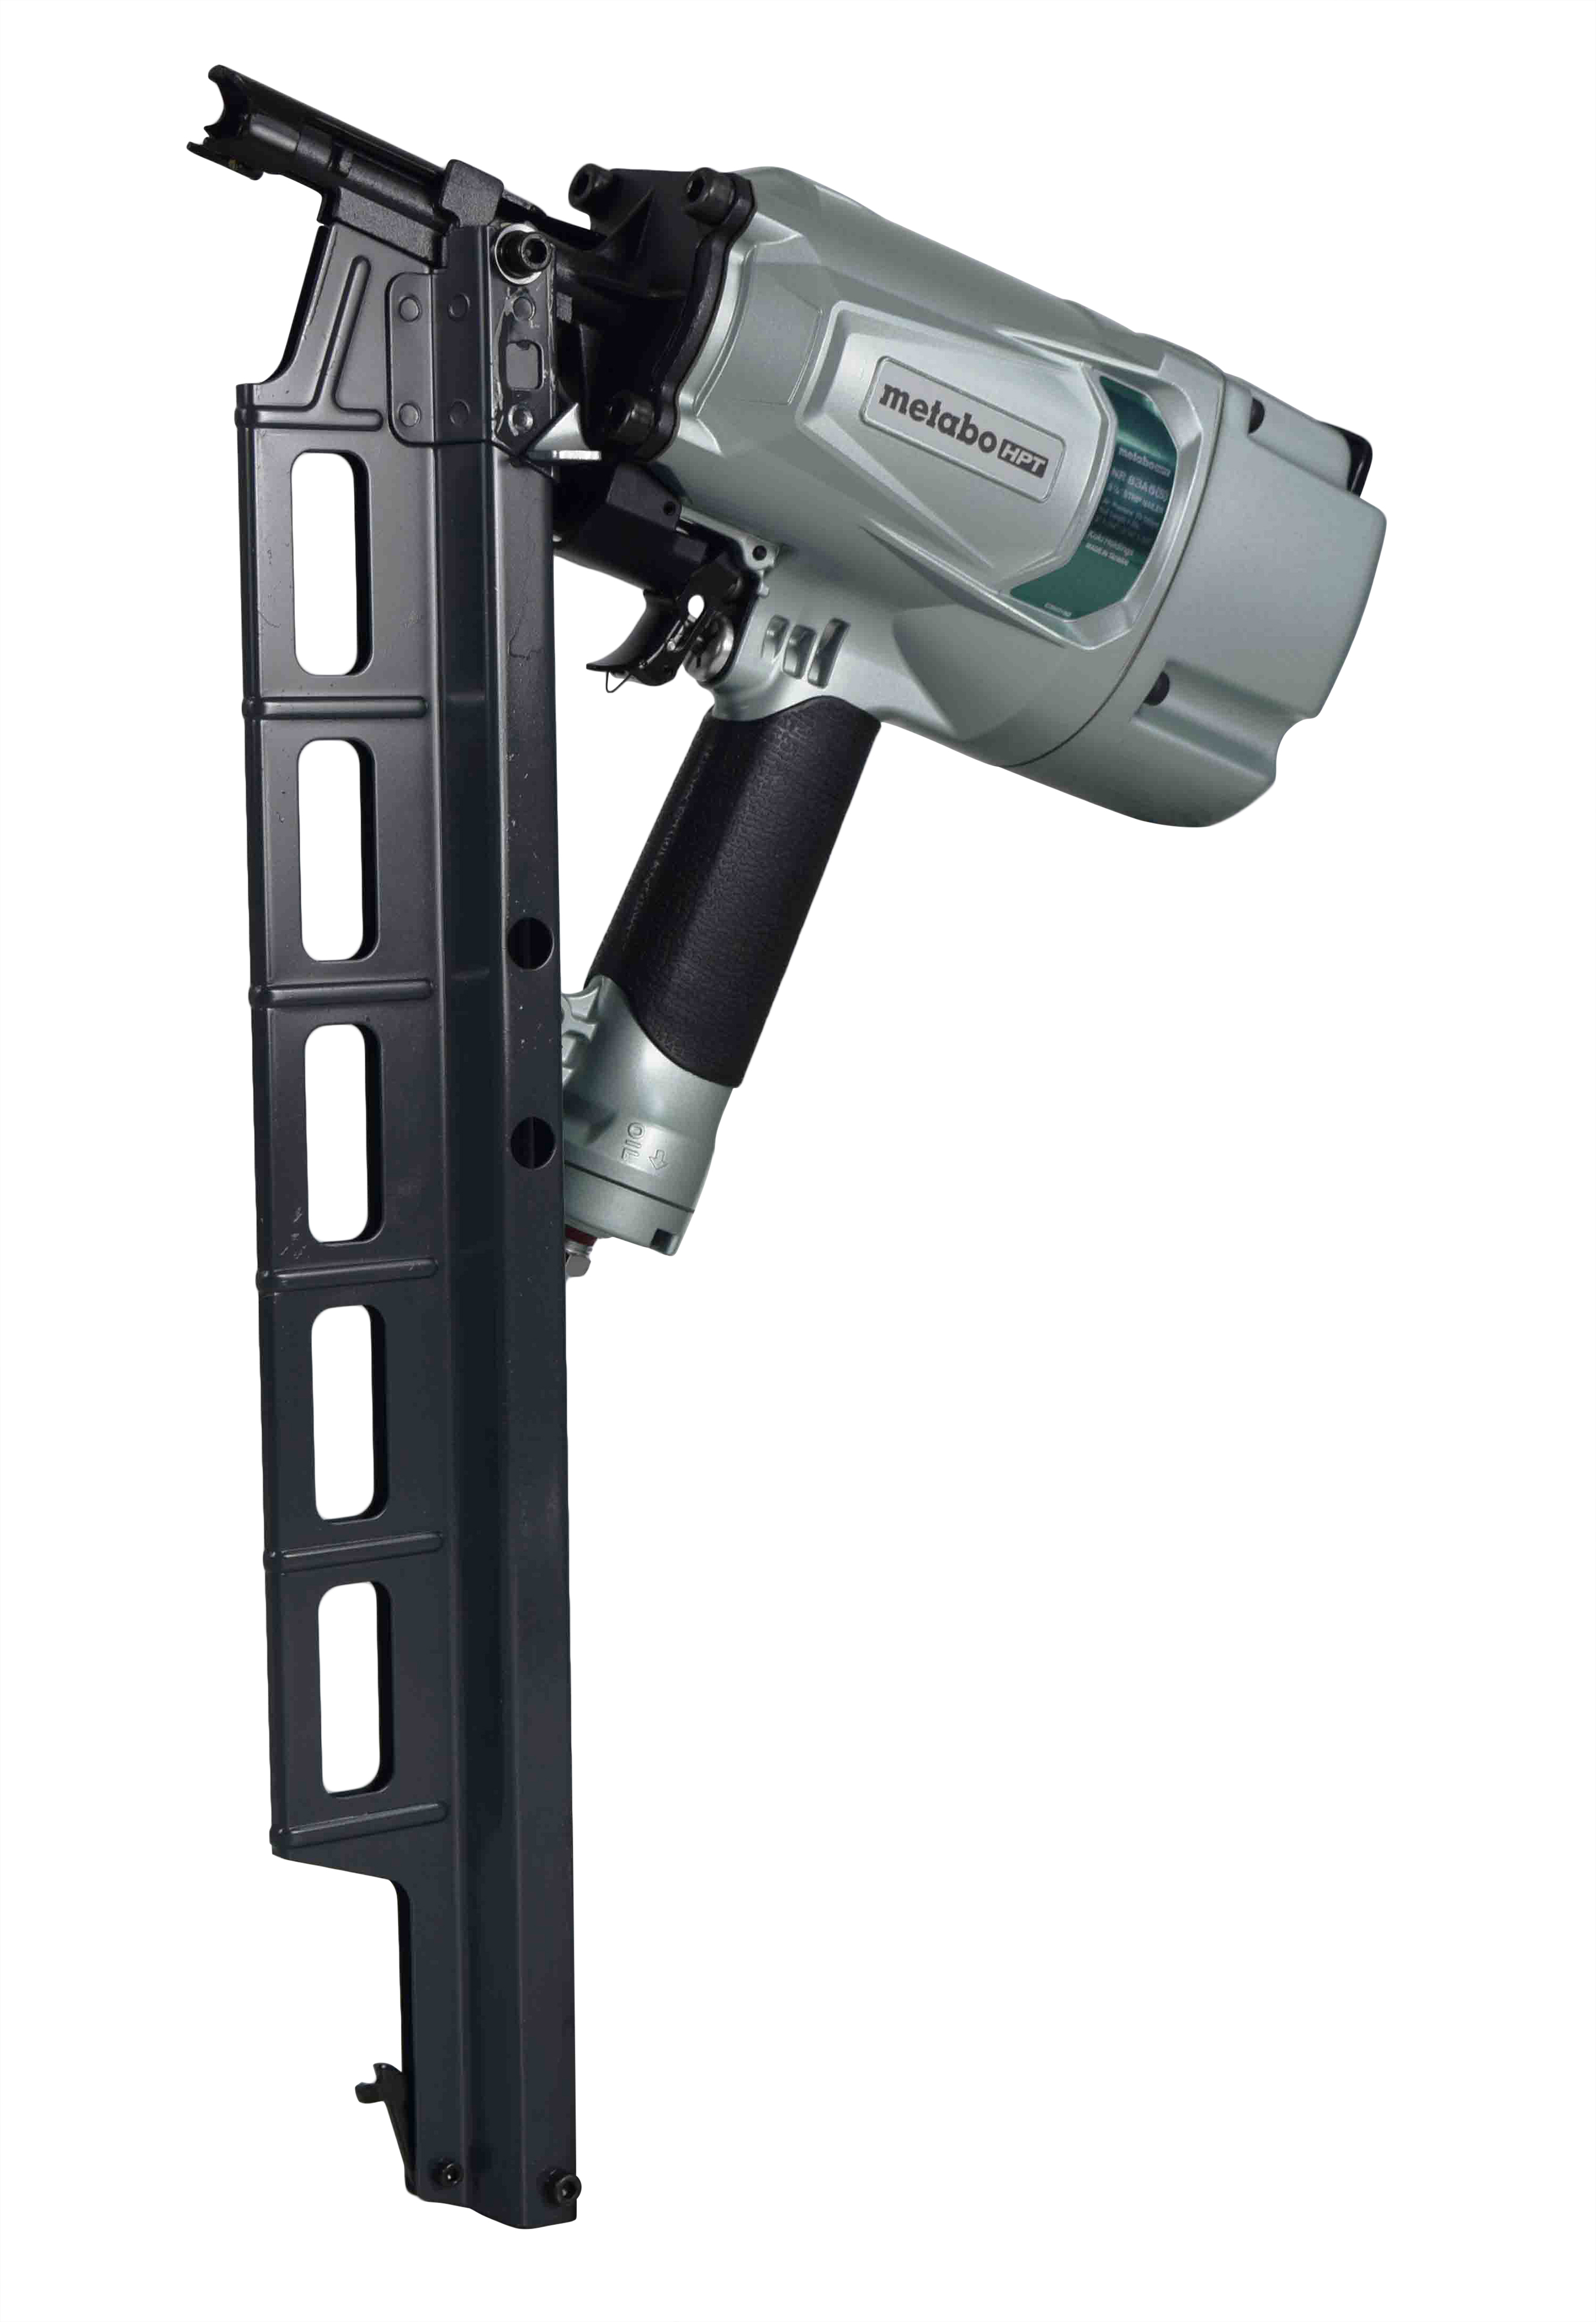 Metabo-NR83A5-S-HPT-Pneumatic-Framing-Nailer-With-21-Degree-Magazine-image-1